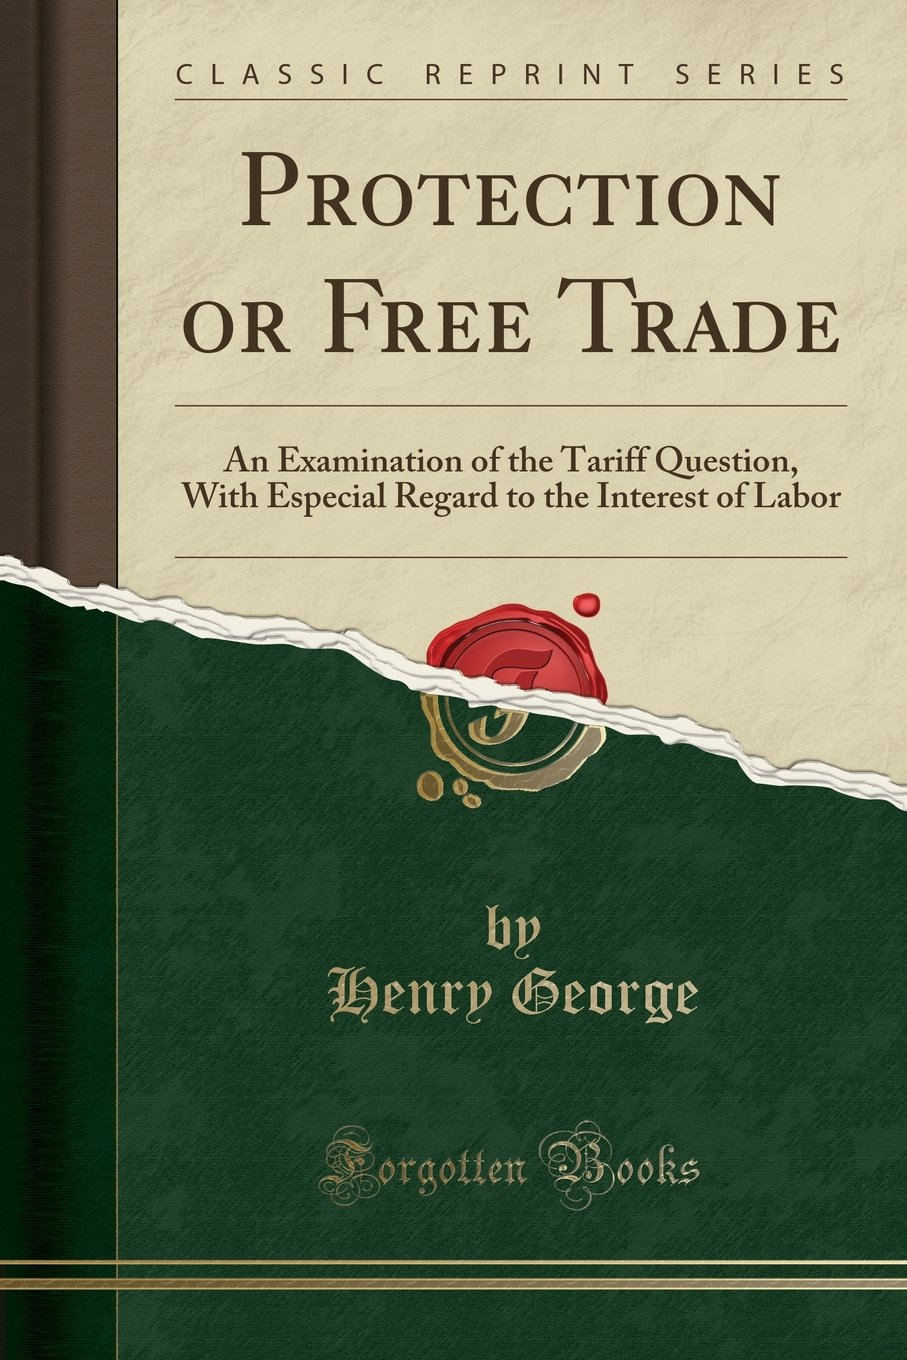 Download Protection or Free Trade: An Examination of the Tariff Question, With Especial Regard to the Interest of Labor (Classic Reprint) ebook